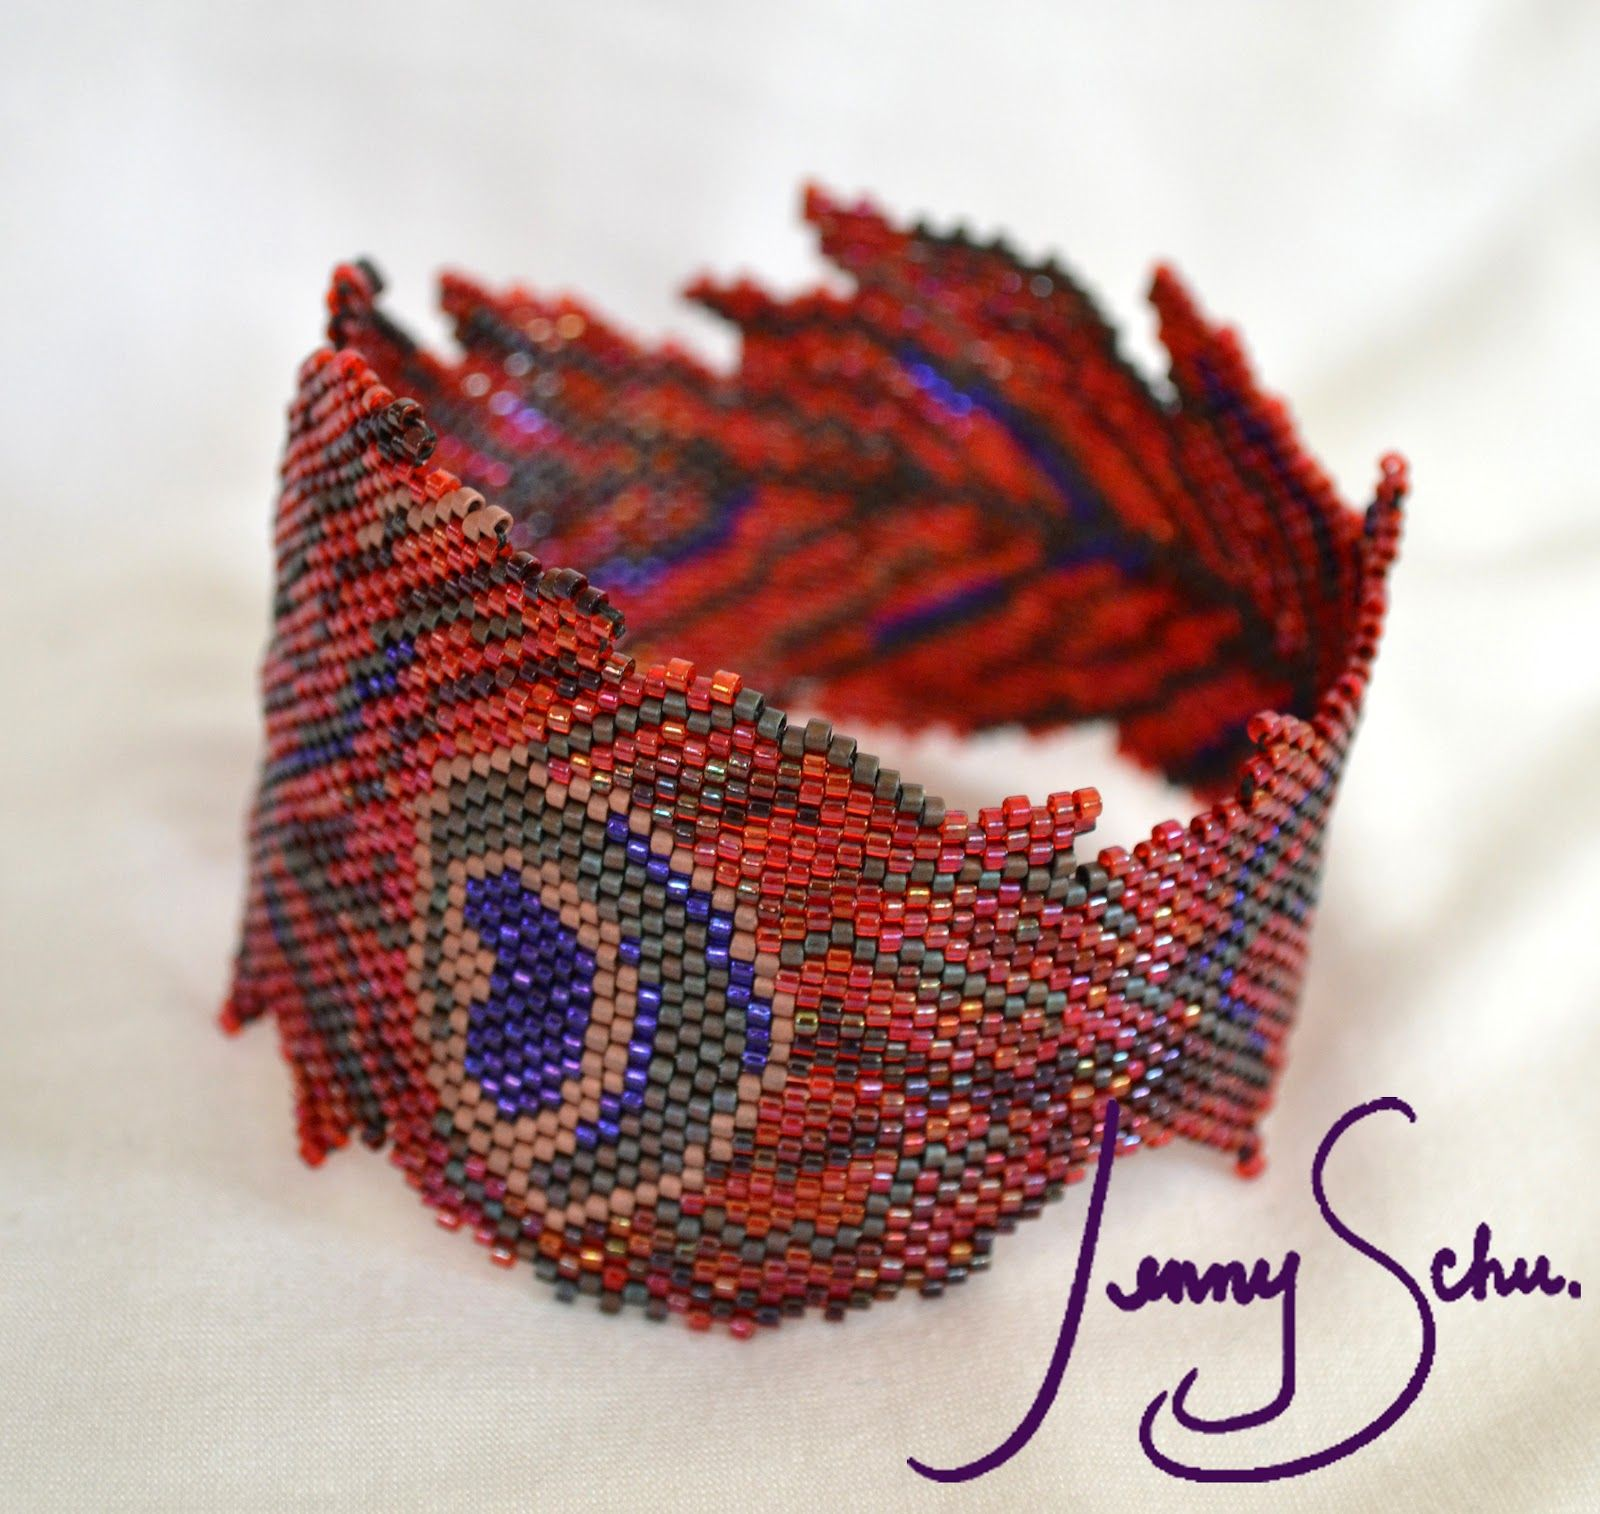 Jenny Schu's Beads, Yarn and Other Sundries: Pheonix Feather ...